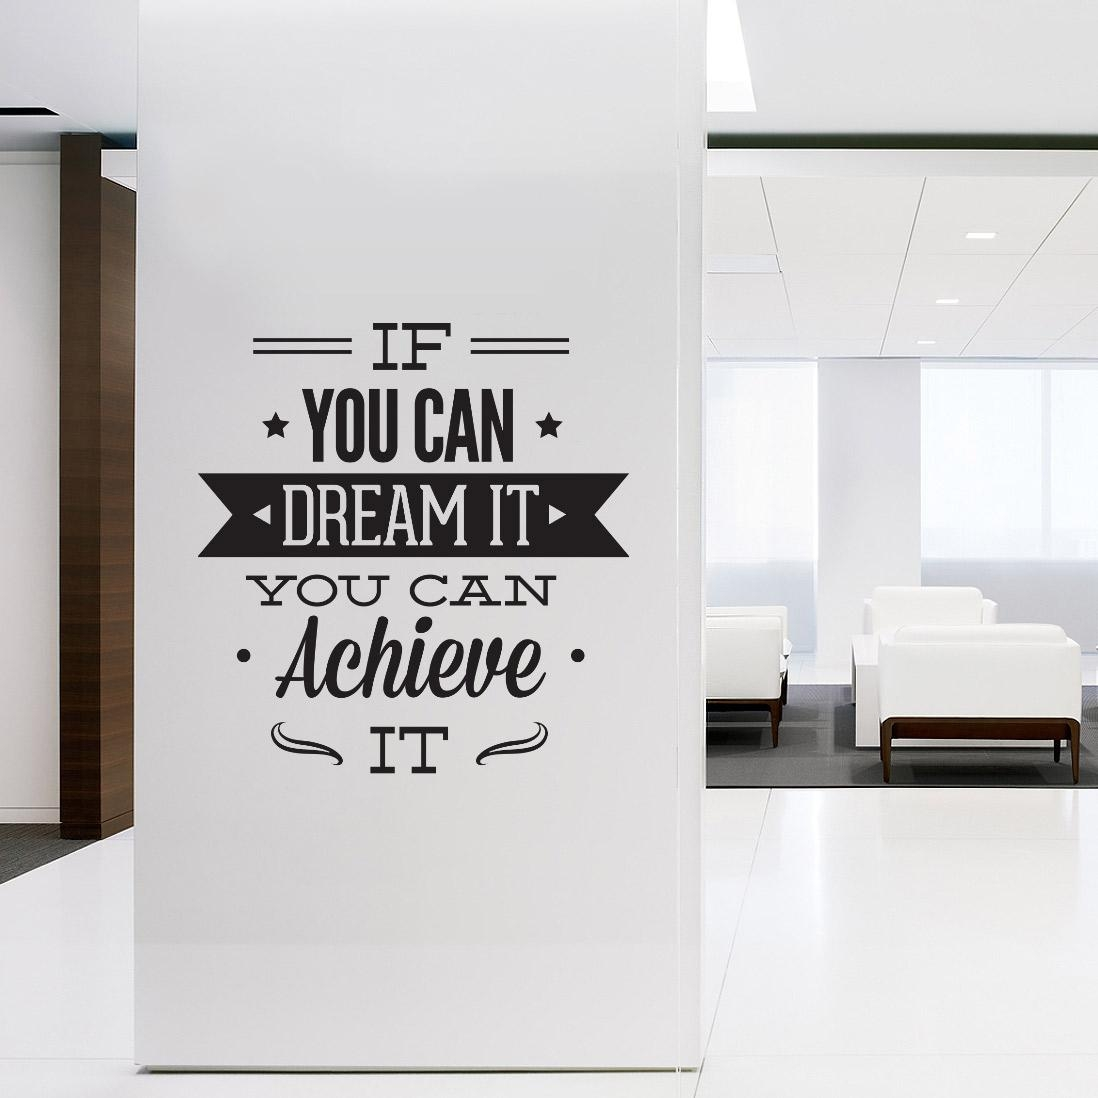 Office Wall Decals Art Ideas | Inspiration Home Designs Within Inspirational Wall Decals For Office (View 15 of 20)